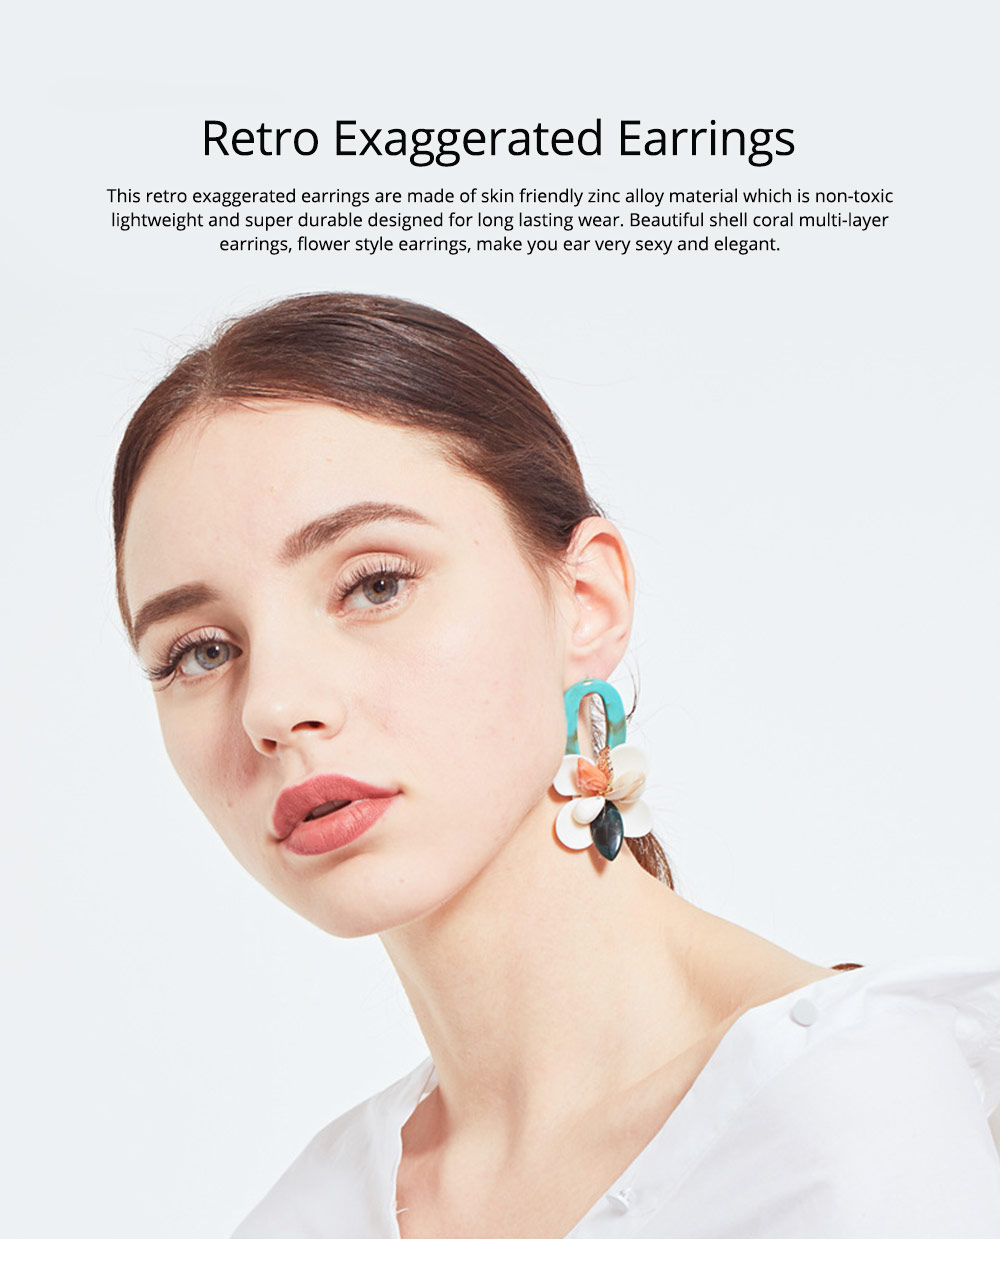 Retro Exaggerated Earrings Shell Coral Multilayer Earrings Acrylic Hoop Pendants Gifts for Women 0